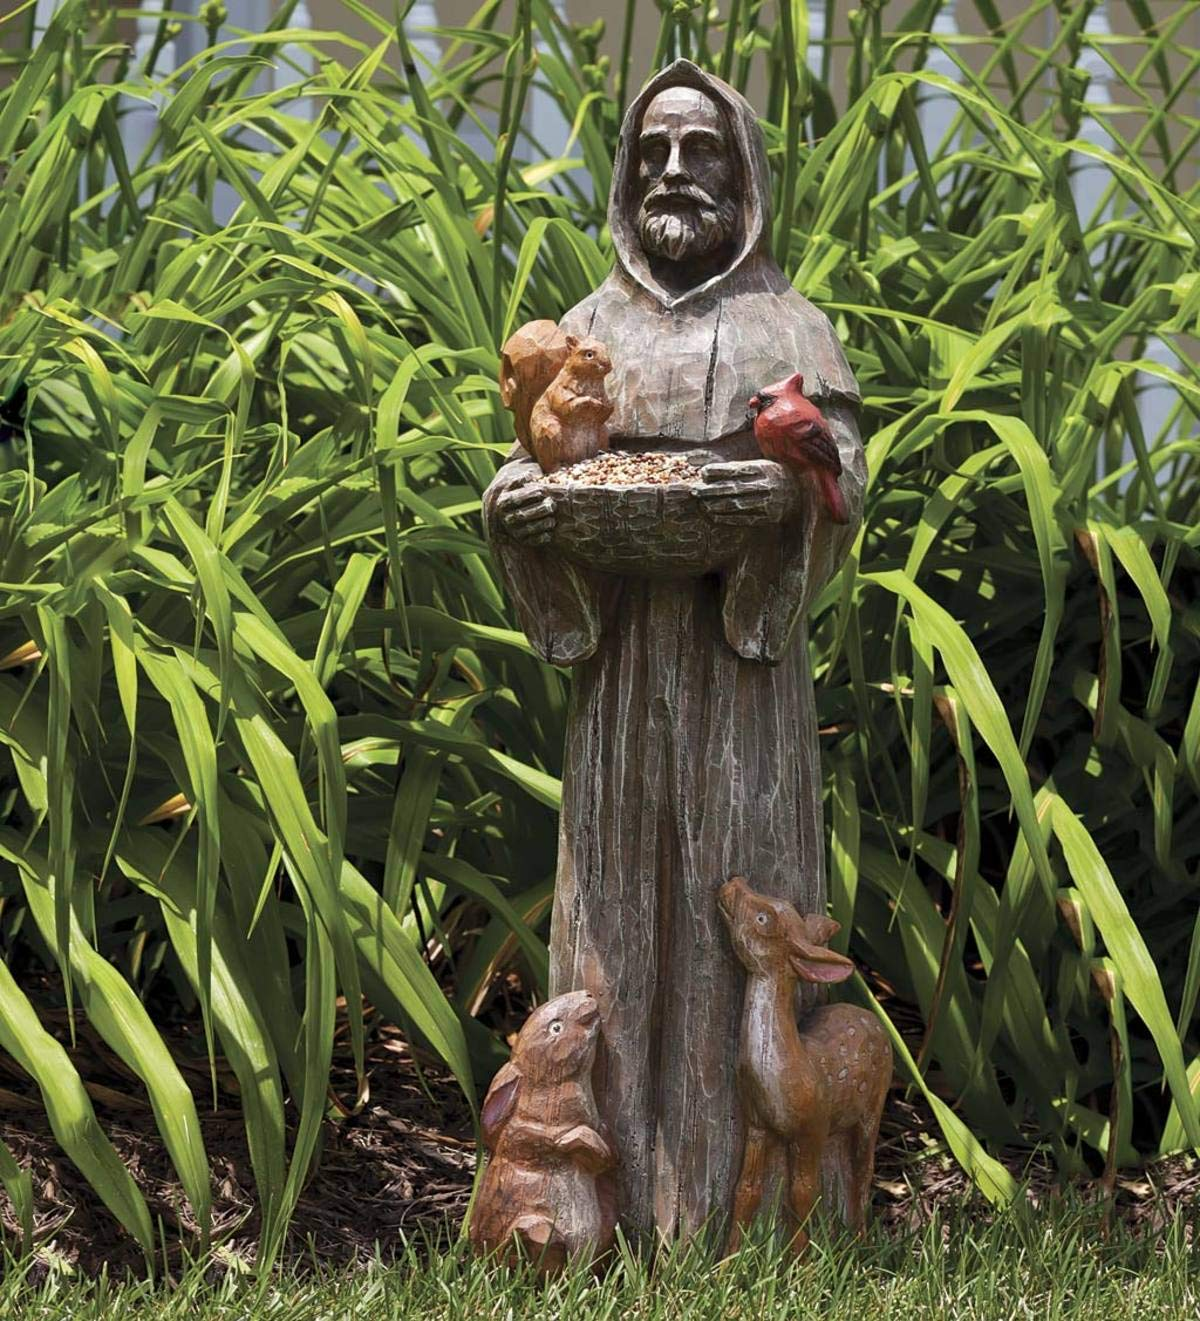 Plow & Hearth St. Francis and Friends Resin Garden Statue - 9.75 Dia x 32.5 H by Plow & Hearth (Image #1)